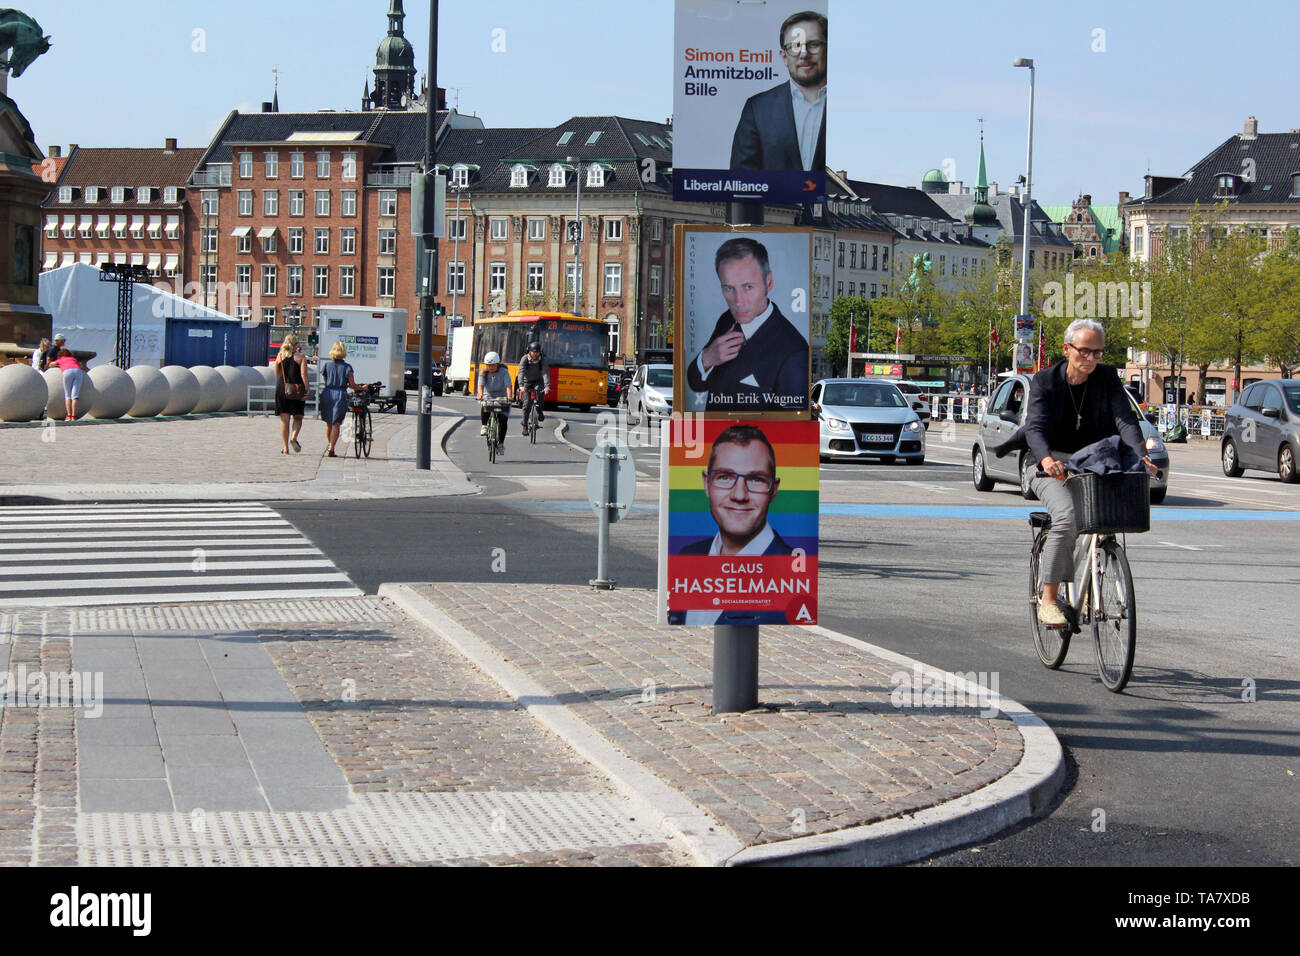 Election posters promoting candidates for 2019 Danish general election, Copenhagen, Denmark - Stock Image